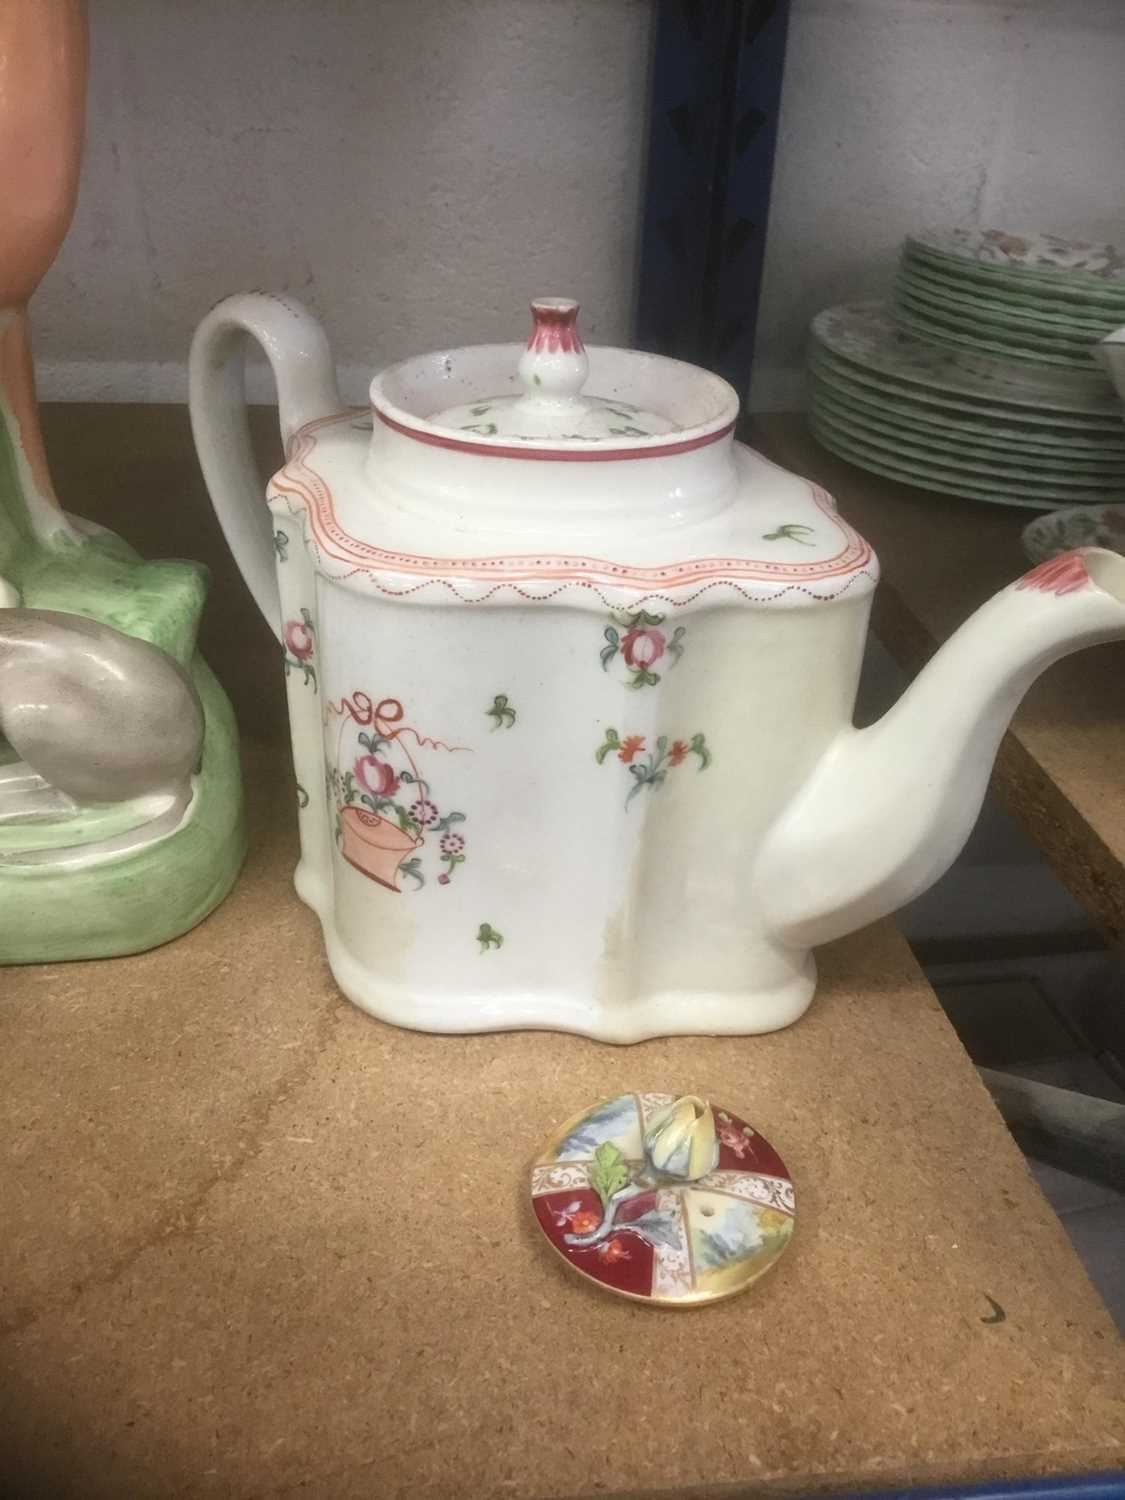 Meissen porcelain teapot (cancelled mark so a 'second'), Newhall teapot, Staffordshire greyhound - Image 6 of 6